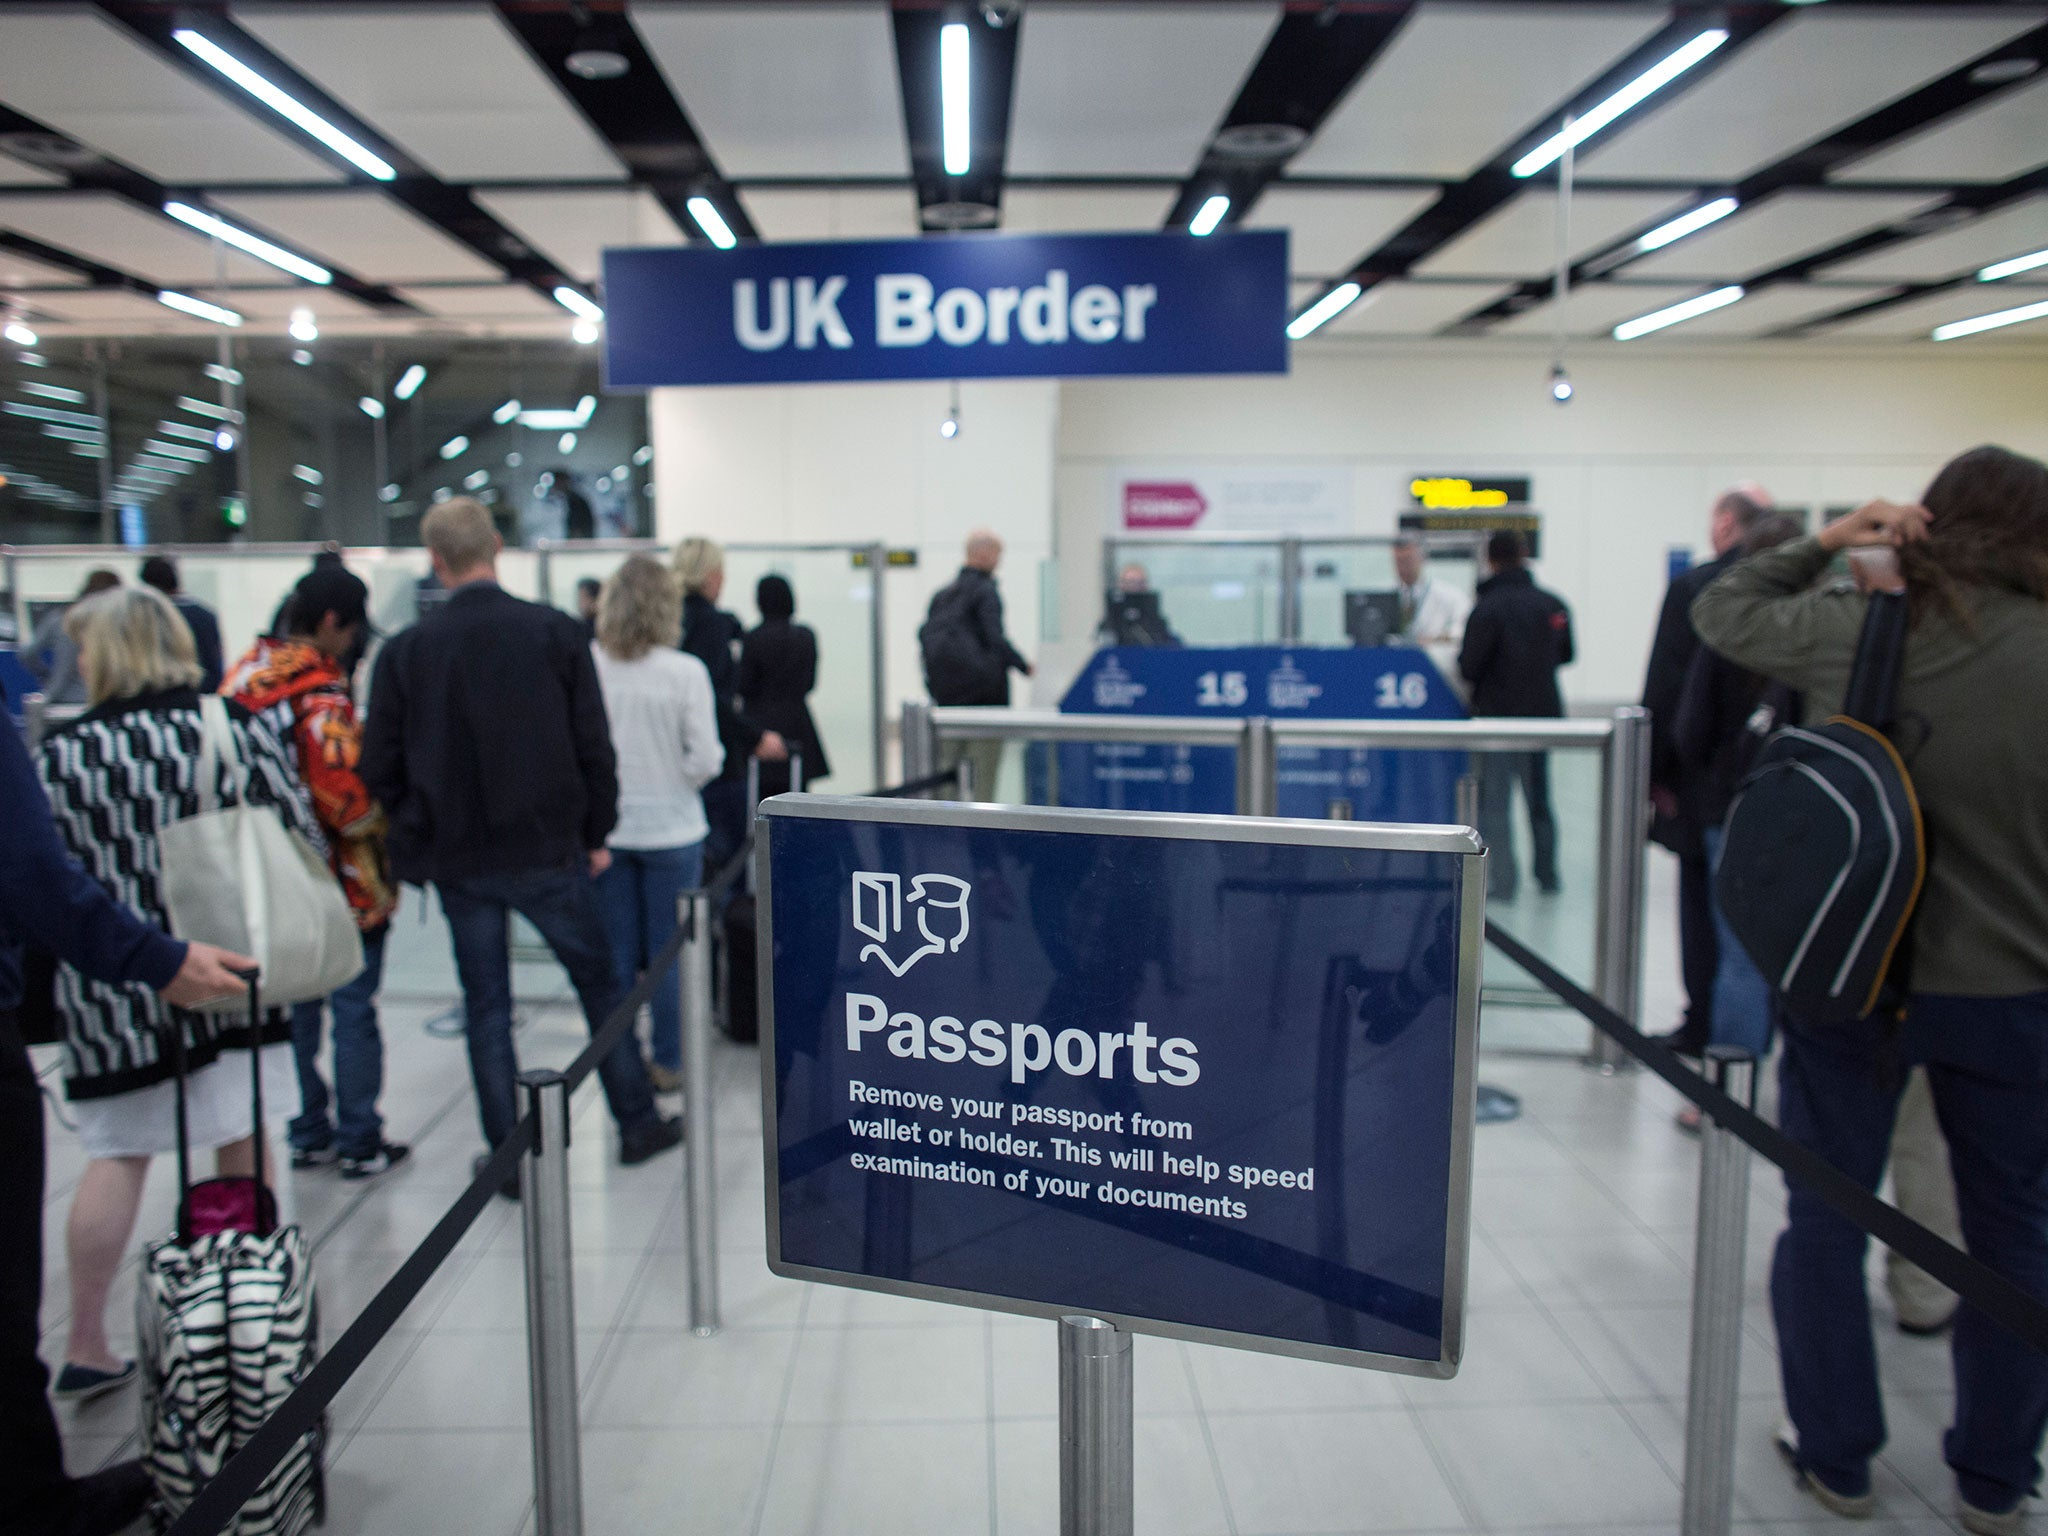 UK immigration latest: EU net migration falls over past year as Brexit uncertainty continues